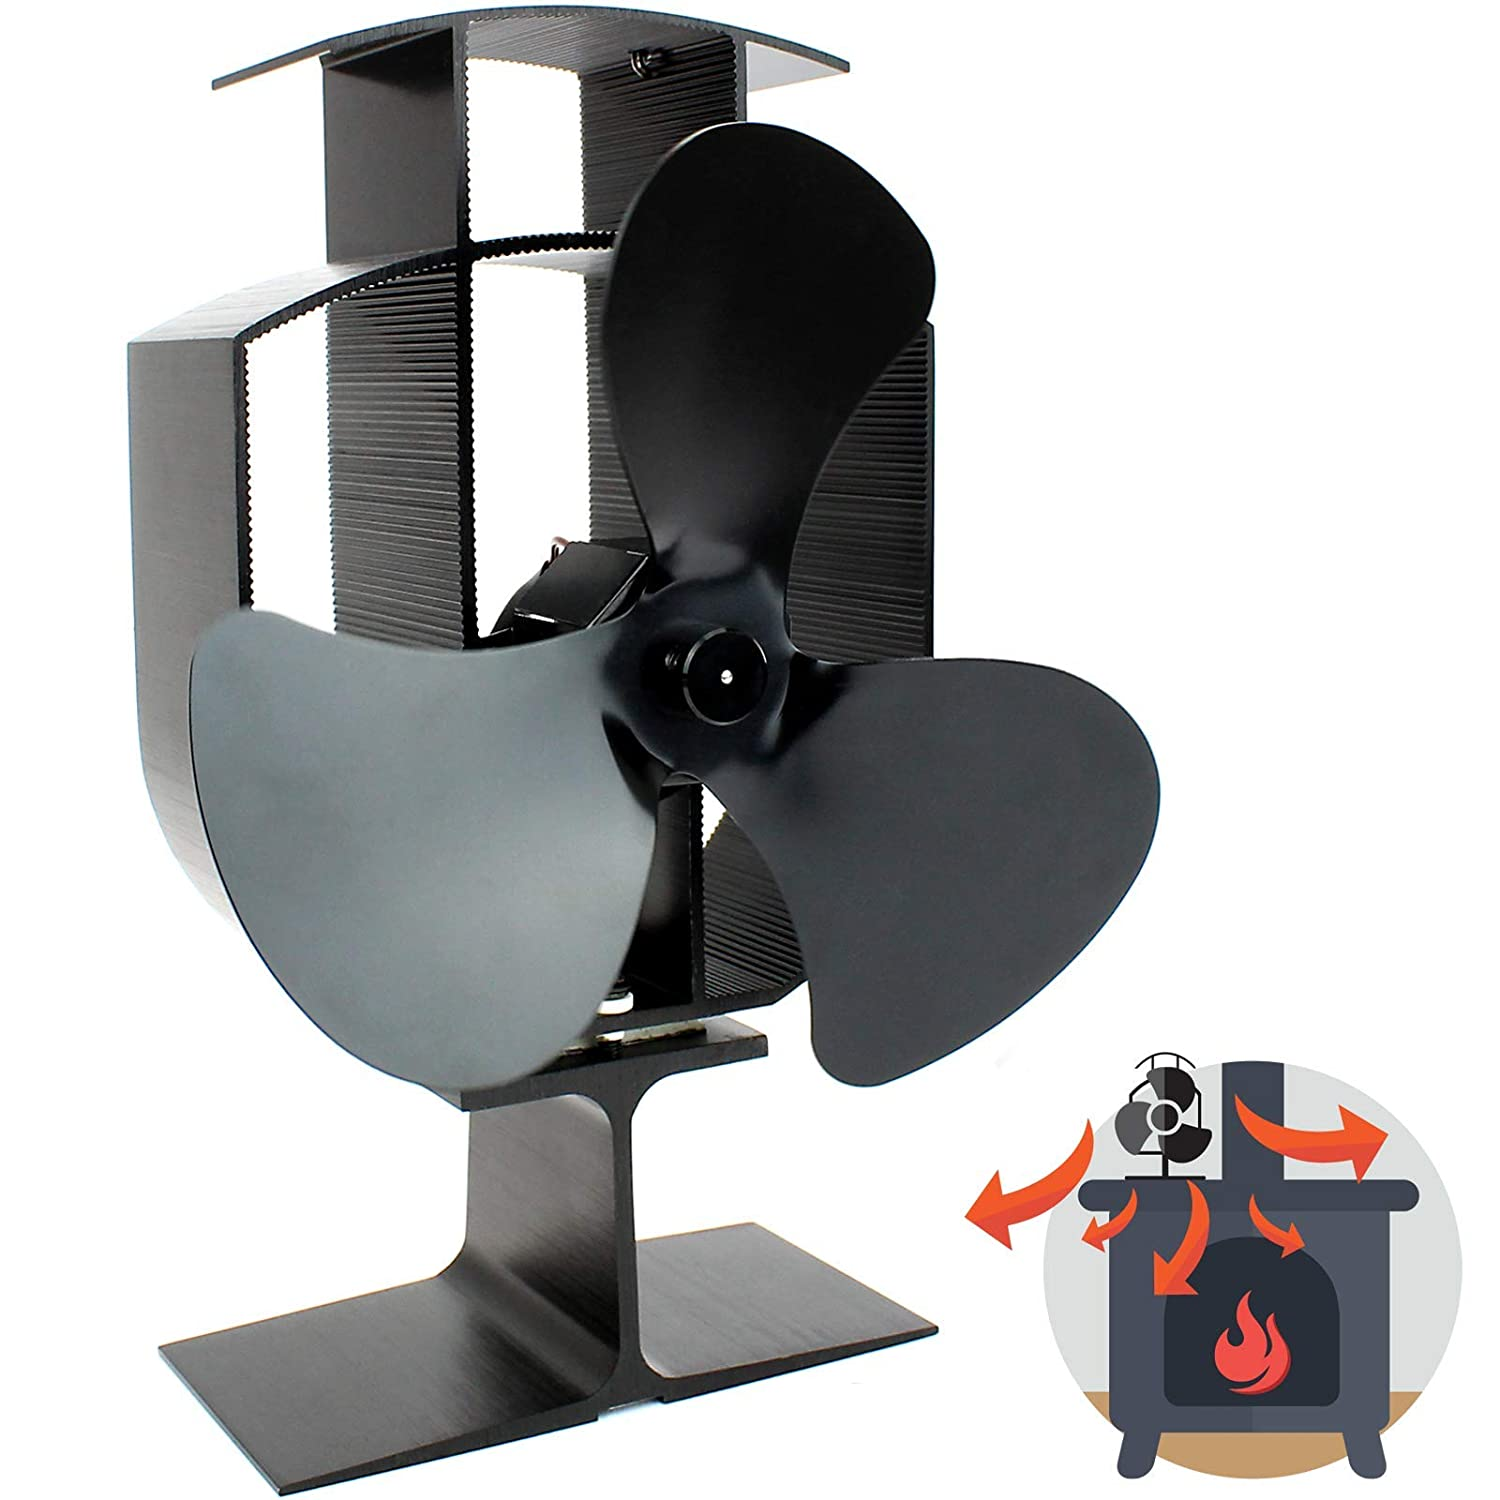 Heat Powered 3 Blade Stove Fan | Silent Operation | Fireplace Wood & Log Burner | Effective Heat Circulation | Eco Friendly | M&W